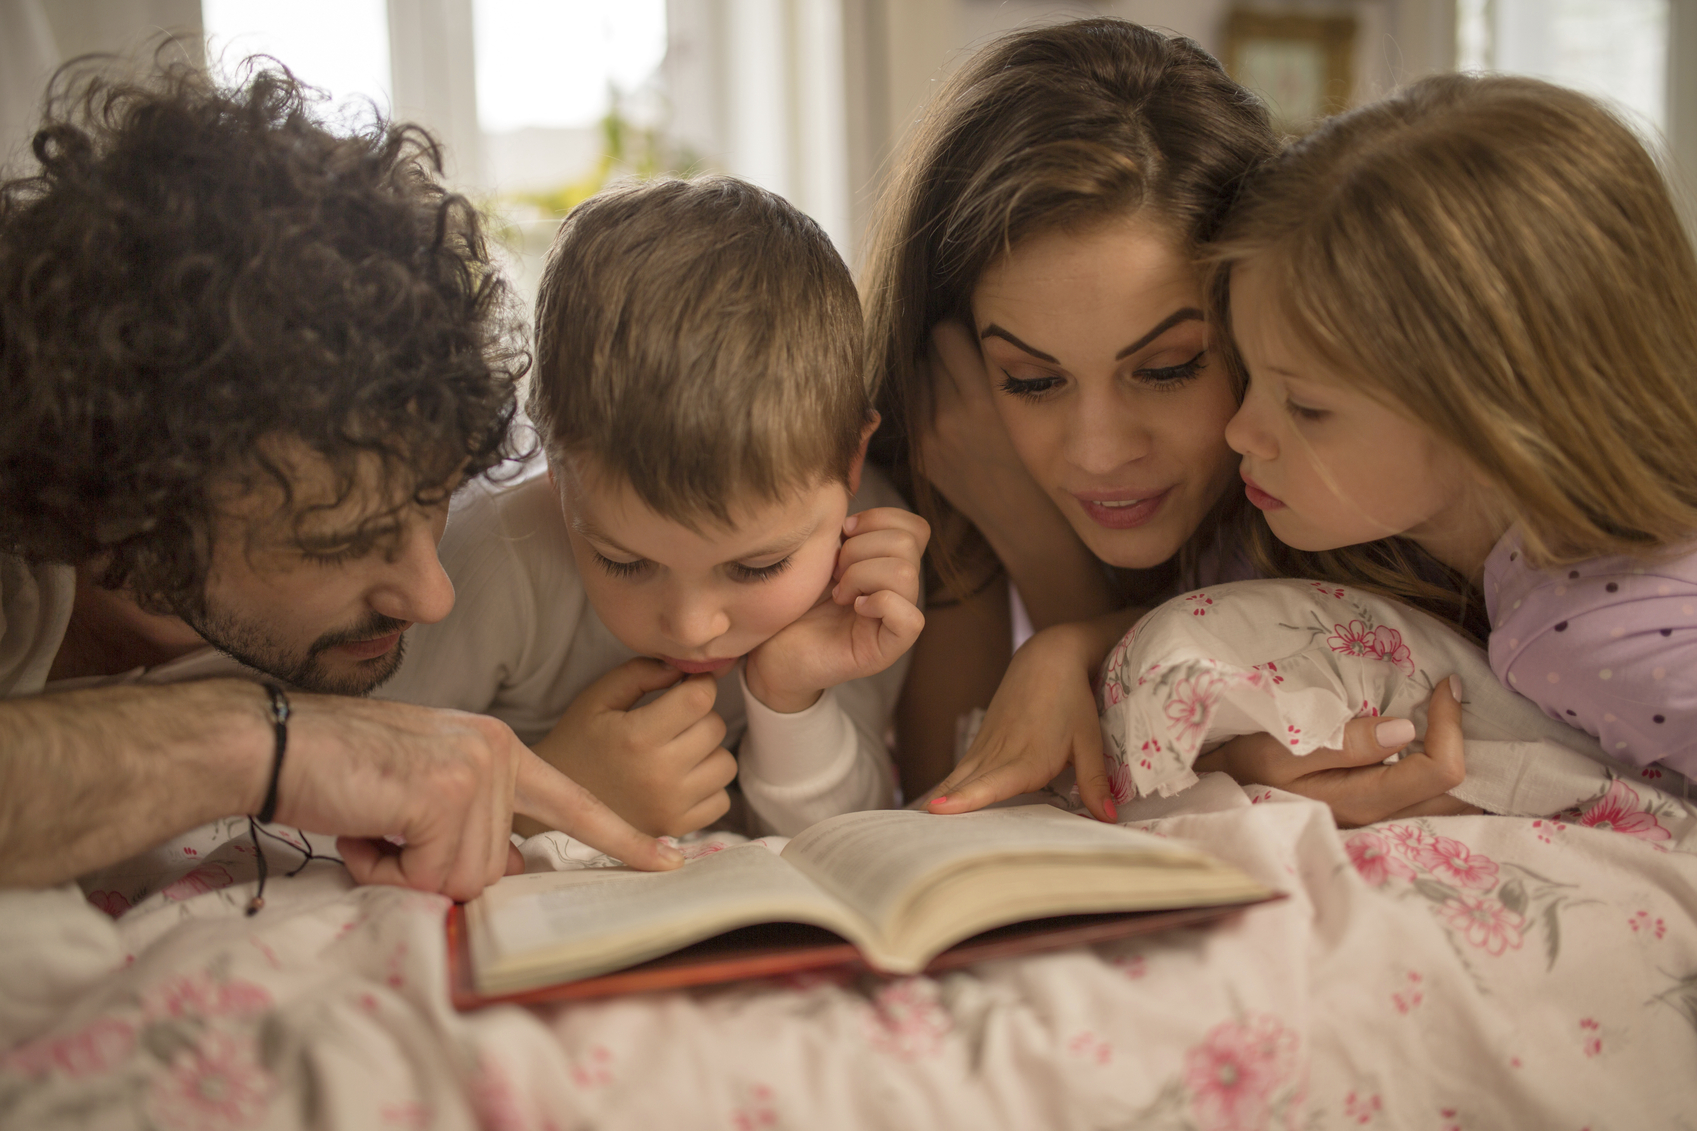 Young parents reading book together with their children in bedroom.